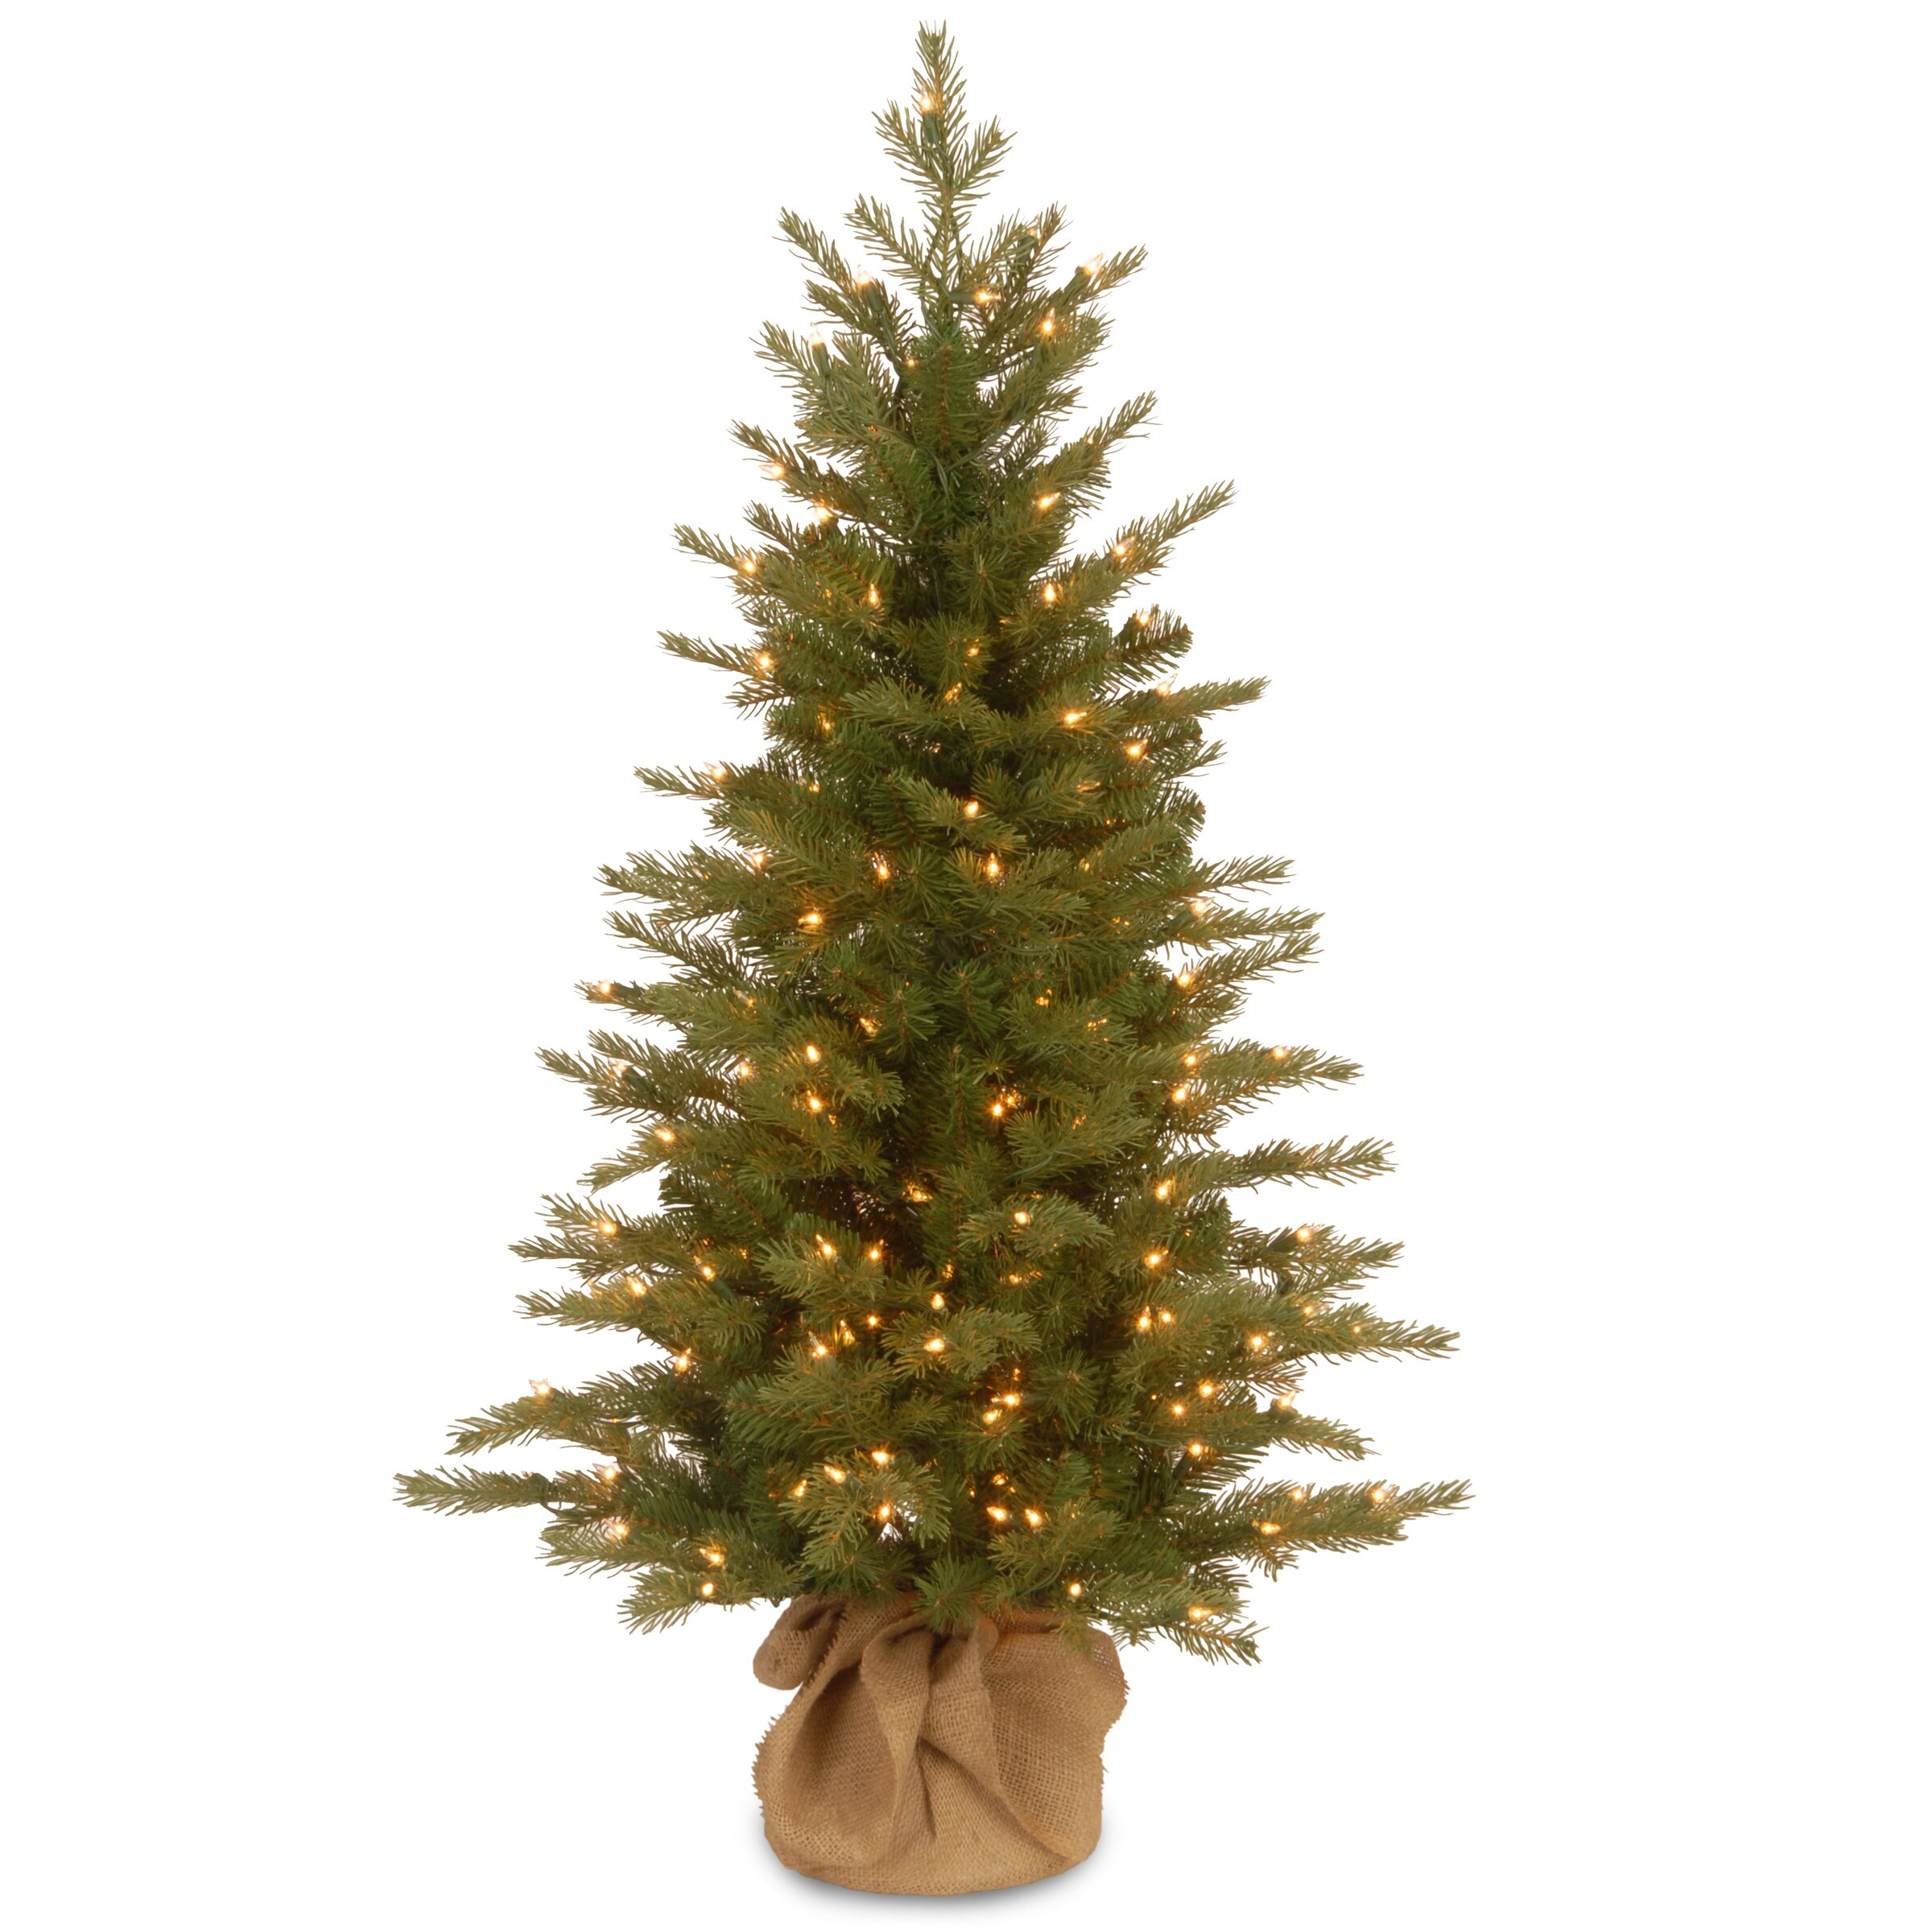 National tree co nordic green spruce artificial